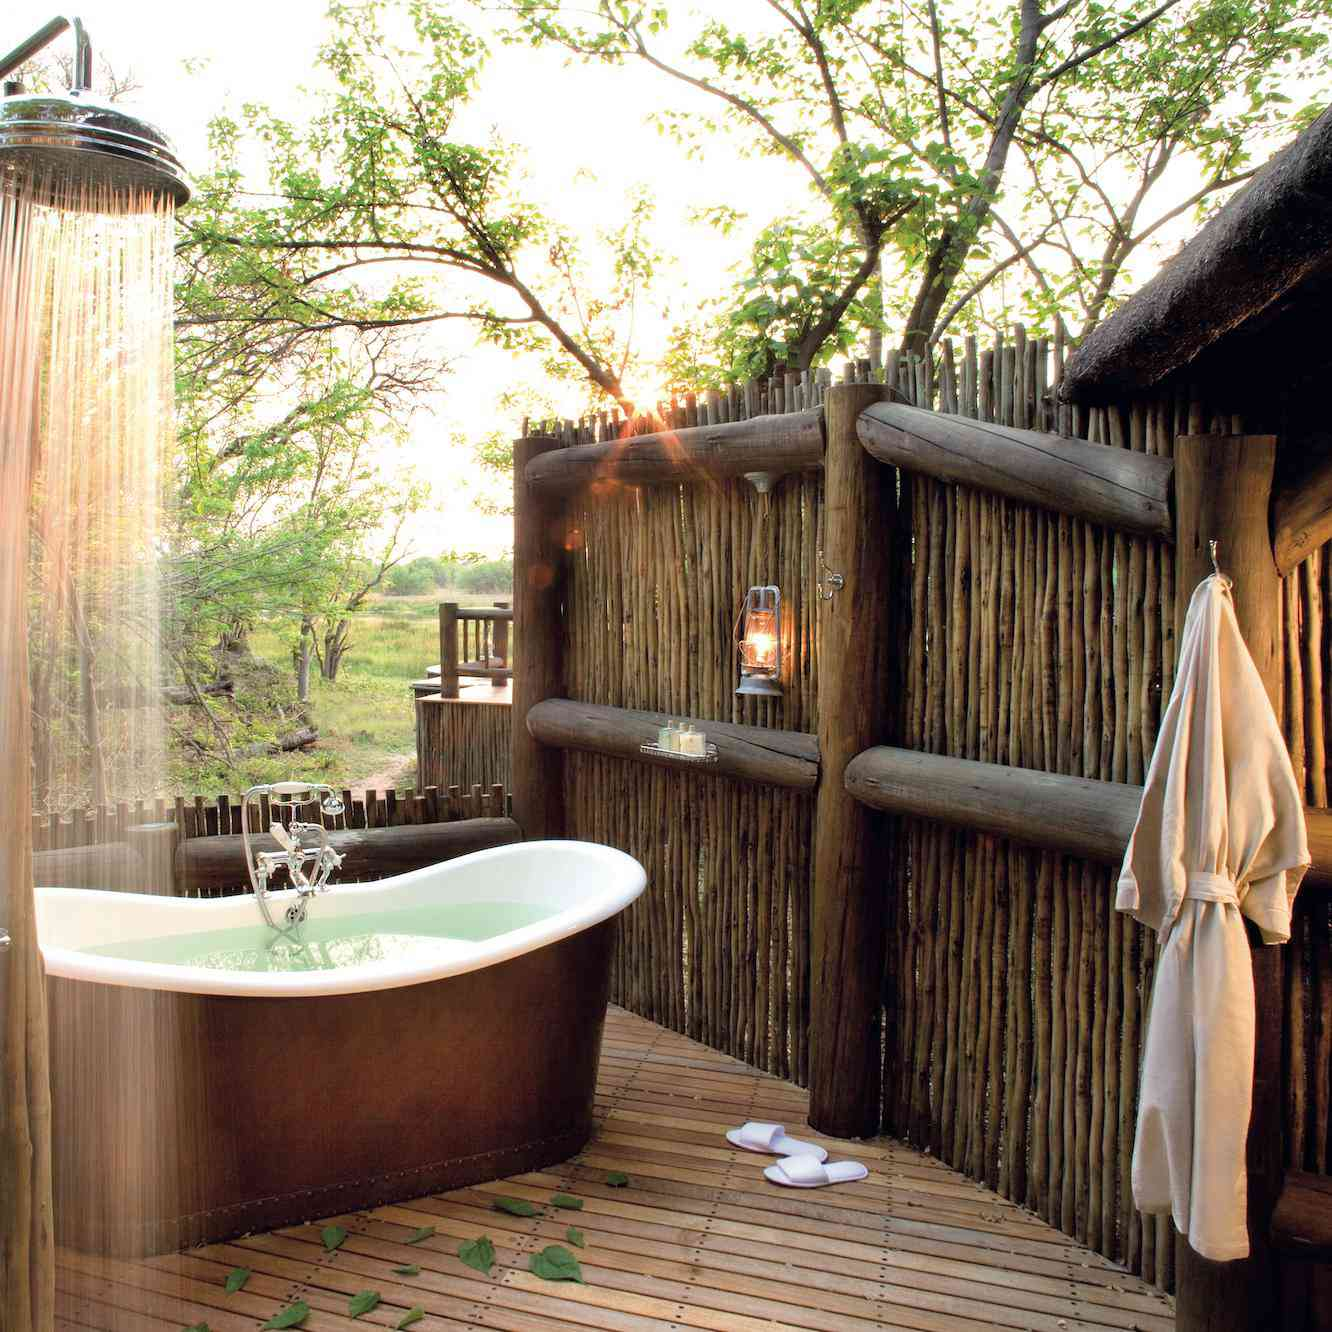 The Sexiest Outdoor Bathtubs For Some Good Clean Fun